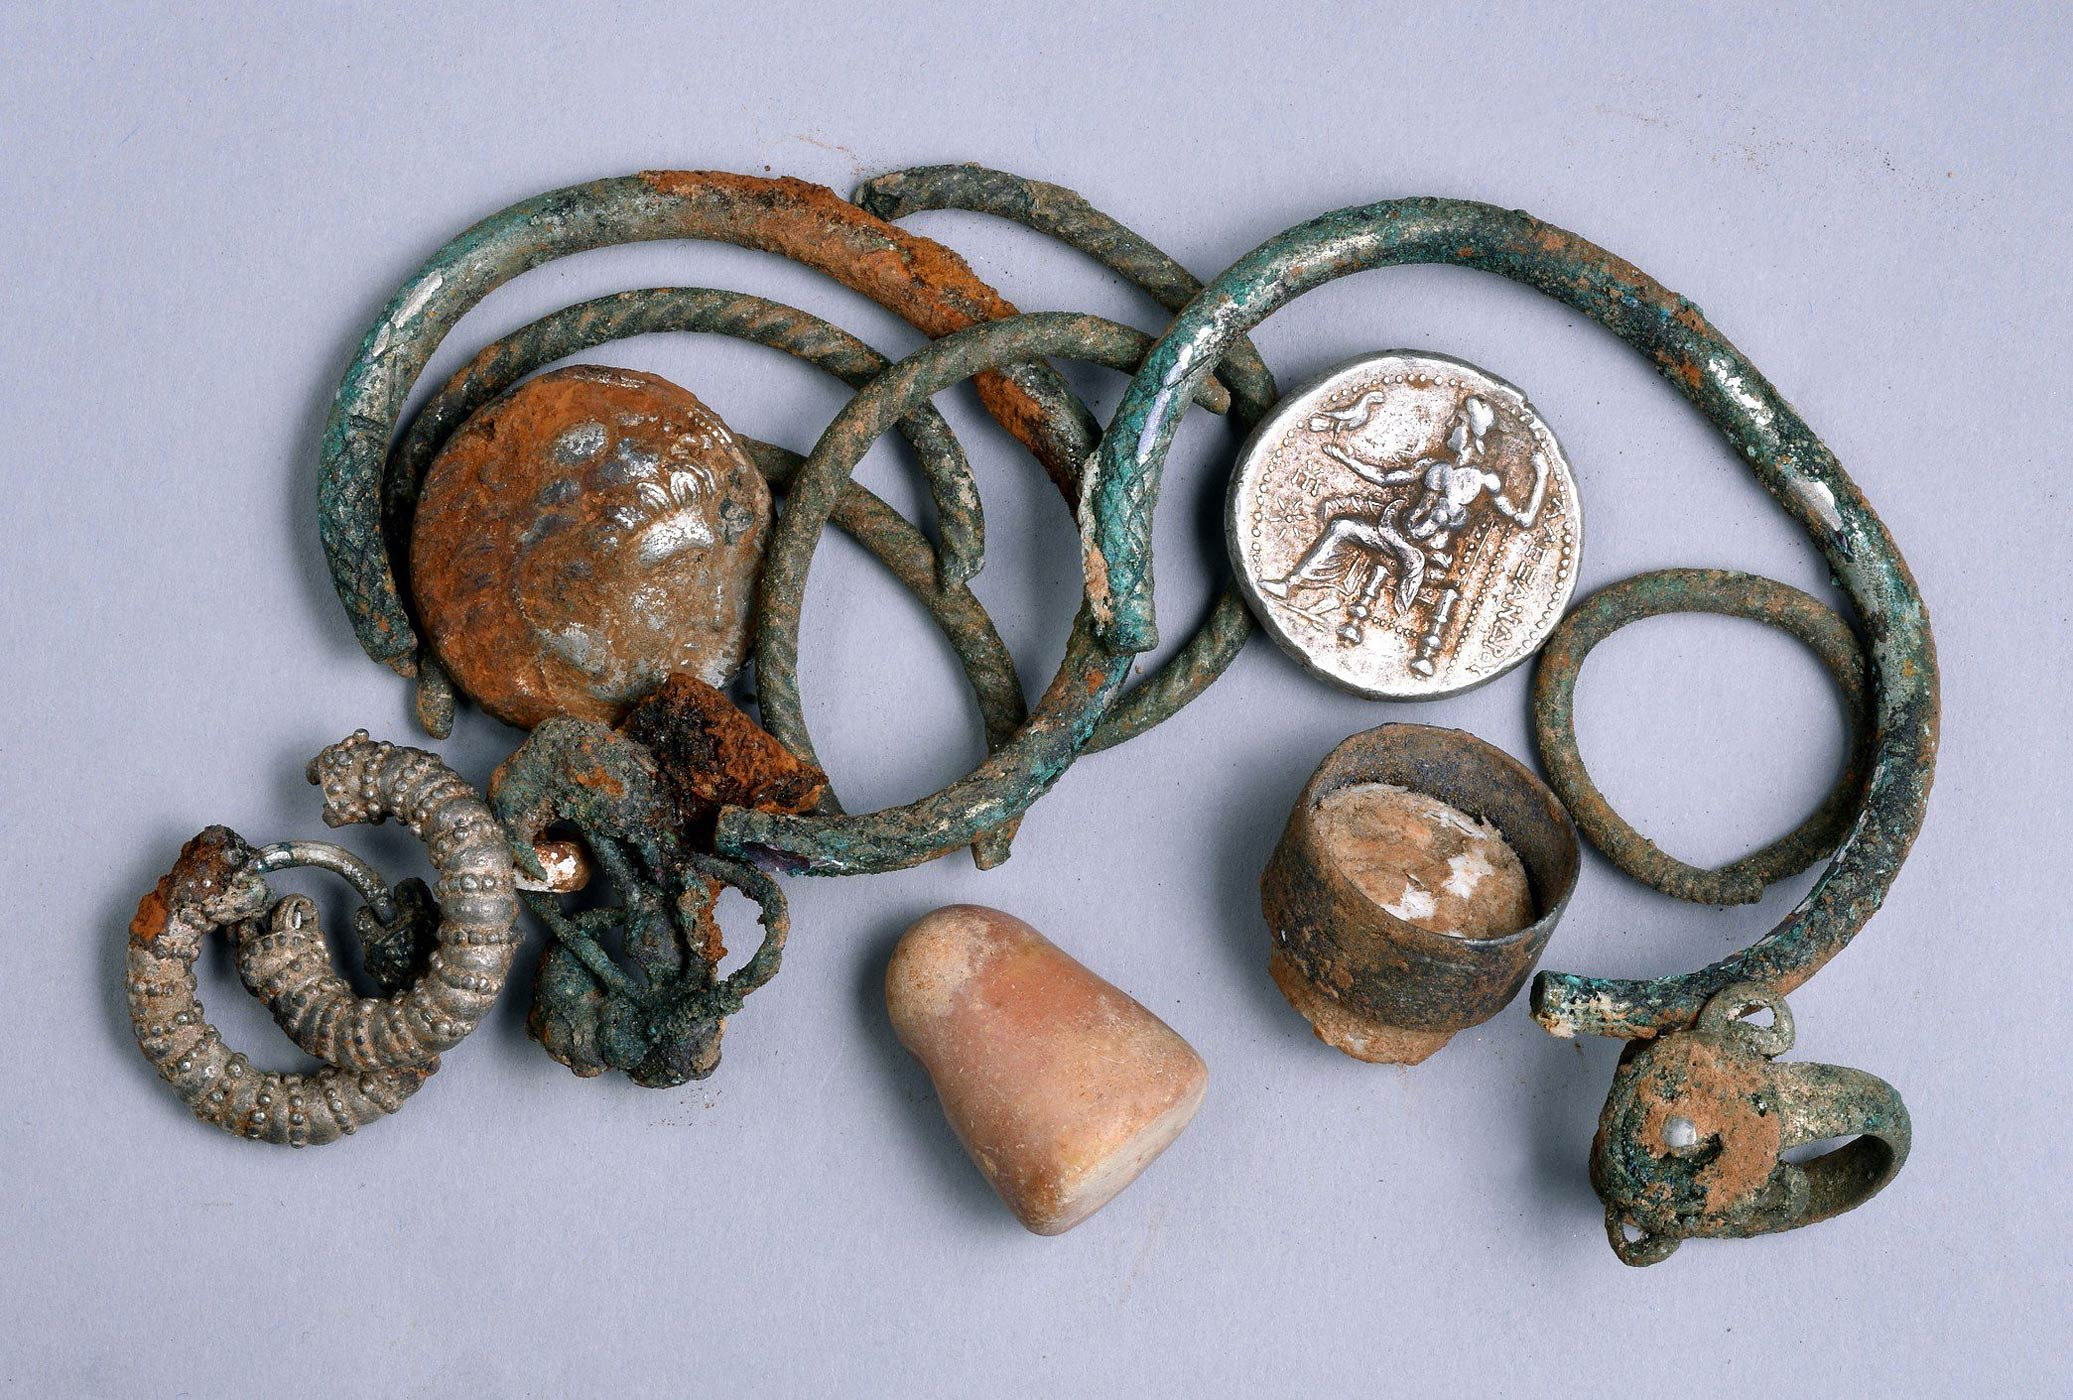 Ancient coins and other objects that were found by chance in a cave in northern Israel.